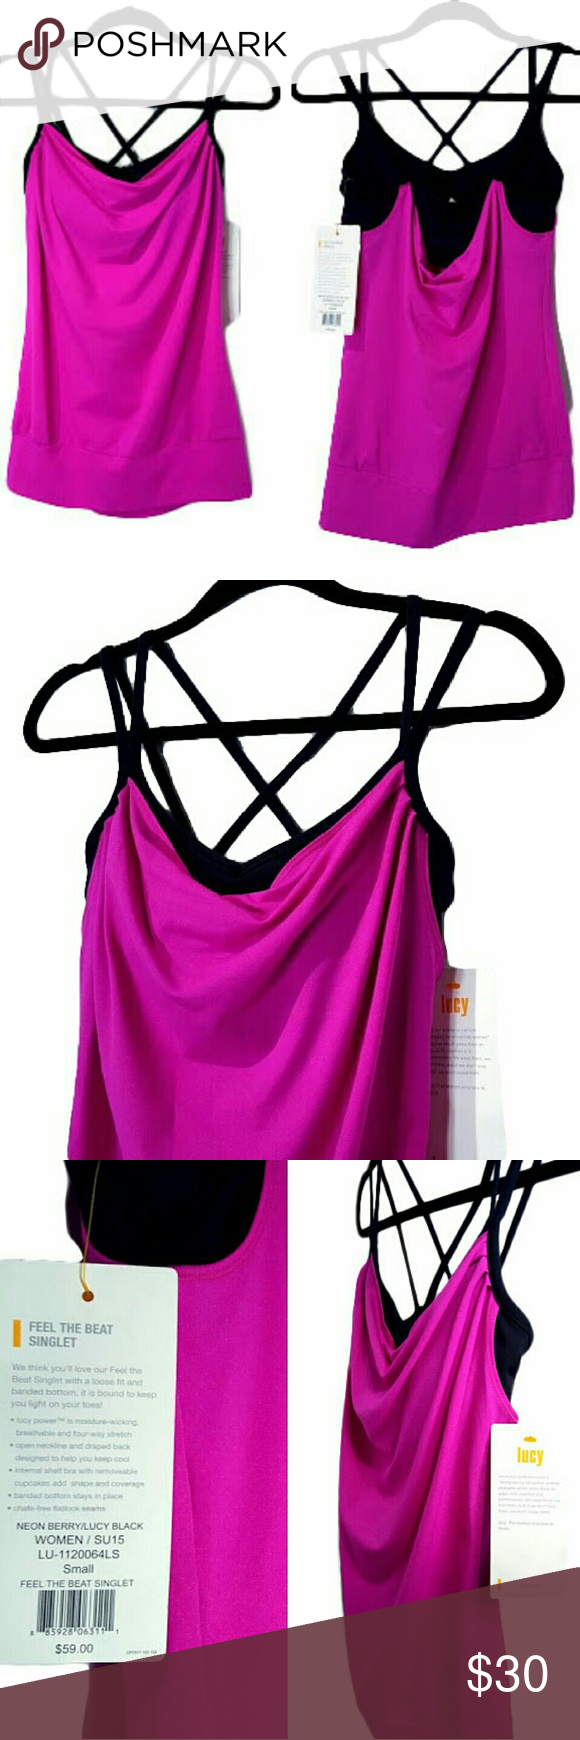 Lucy Athletic Top Athletic top by Lucy in Neon Berry/Lucy Black. Vibrant fuscia top with black straps and black built in shelf bra. Scoop neckline. Black criss cross straps and fuchsia draped back. Stays fitted on your body for your workout or practice at the studio. Moisture wicking, breathable, four-way stretch. Brand new with tags. Never worn. NWT  Ask any questions! Lucy Tops